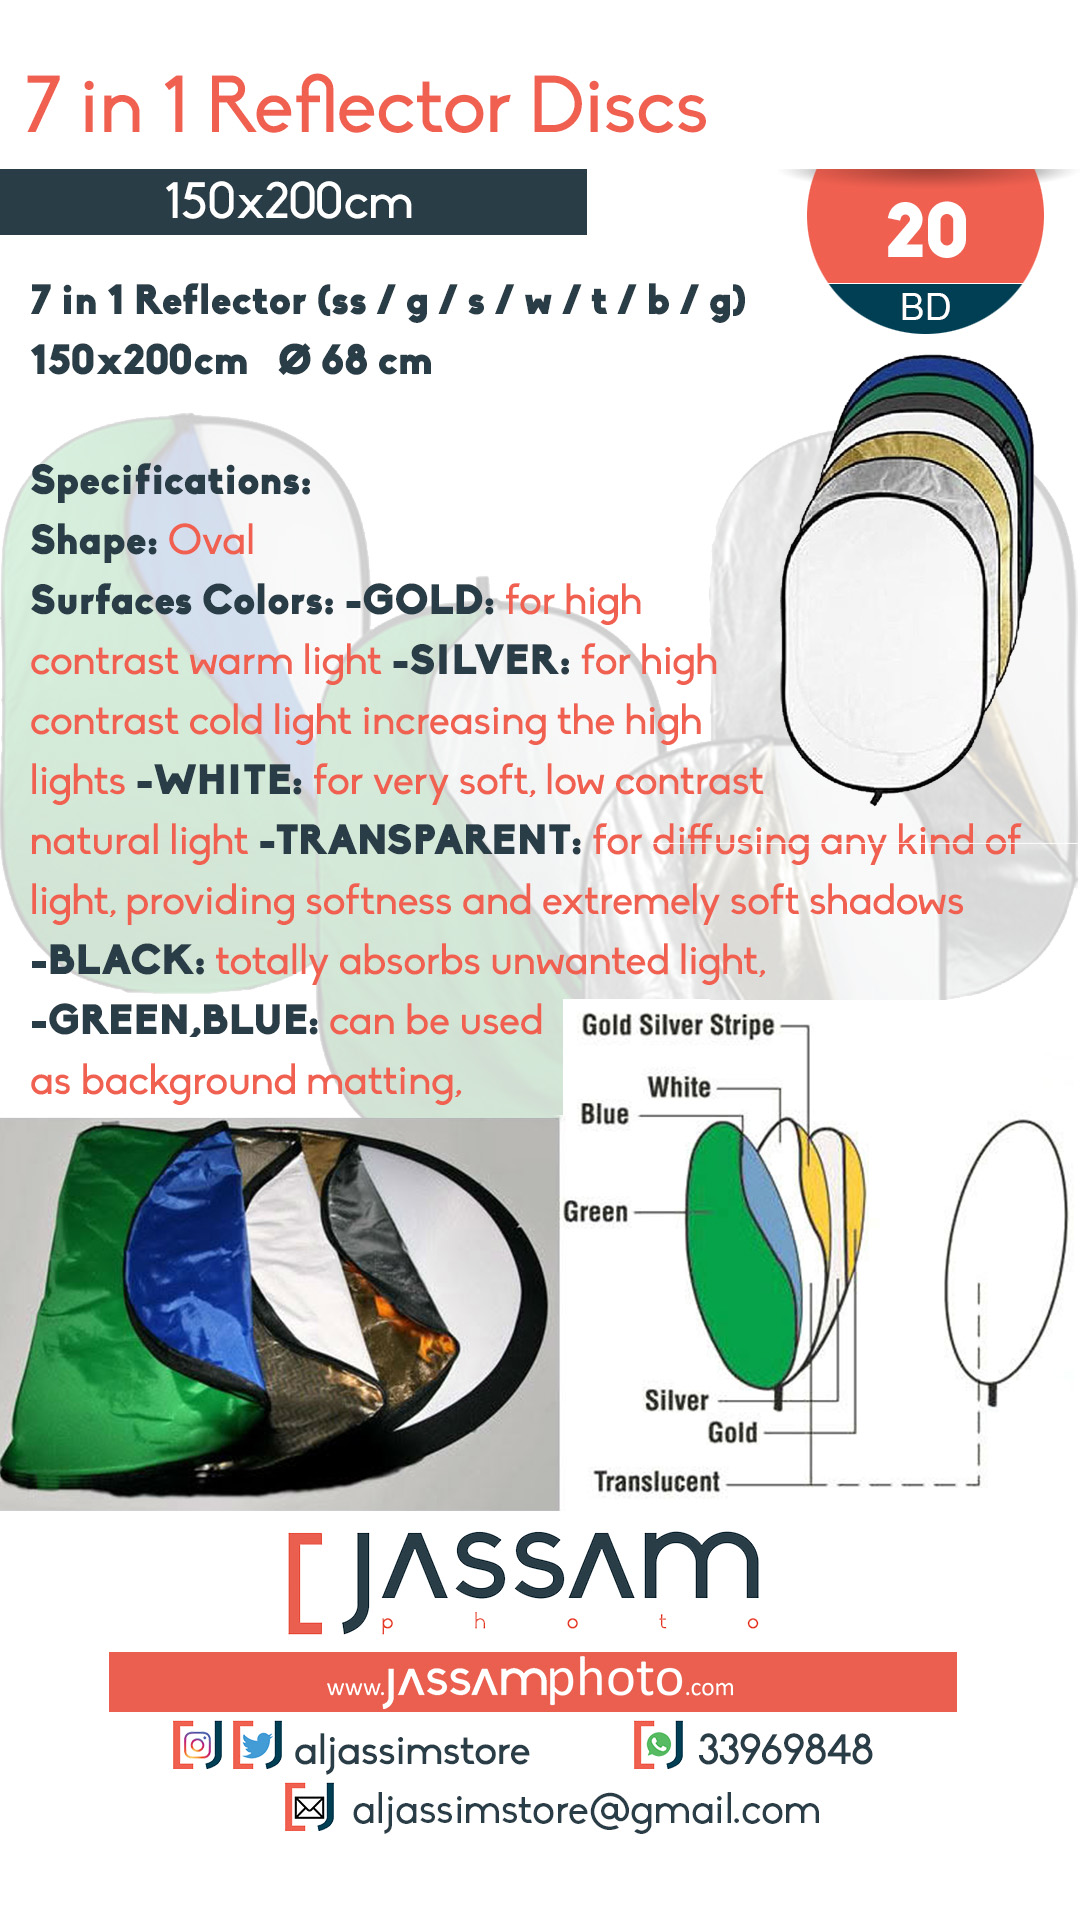 7in1 Reflector